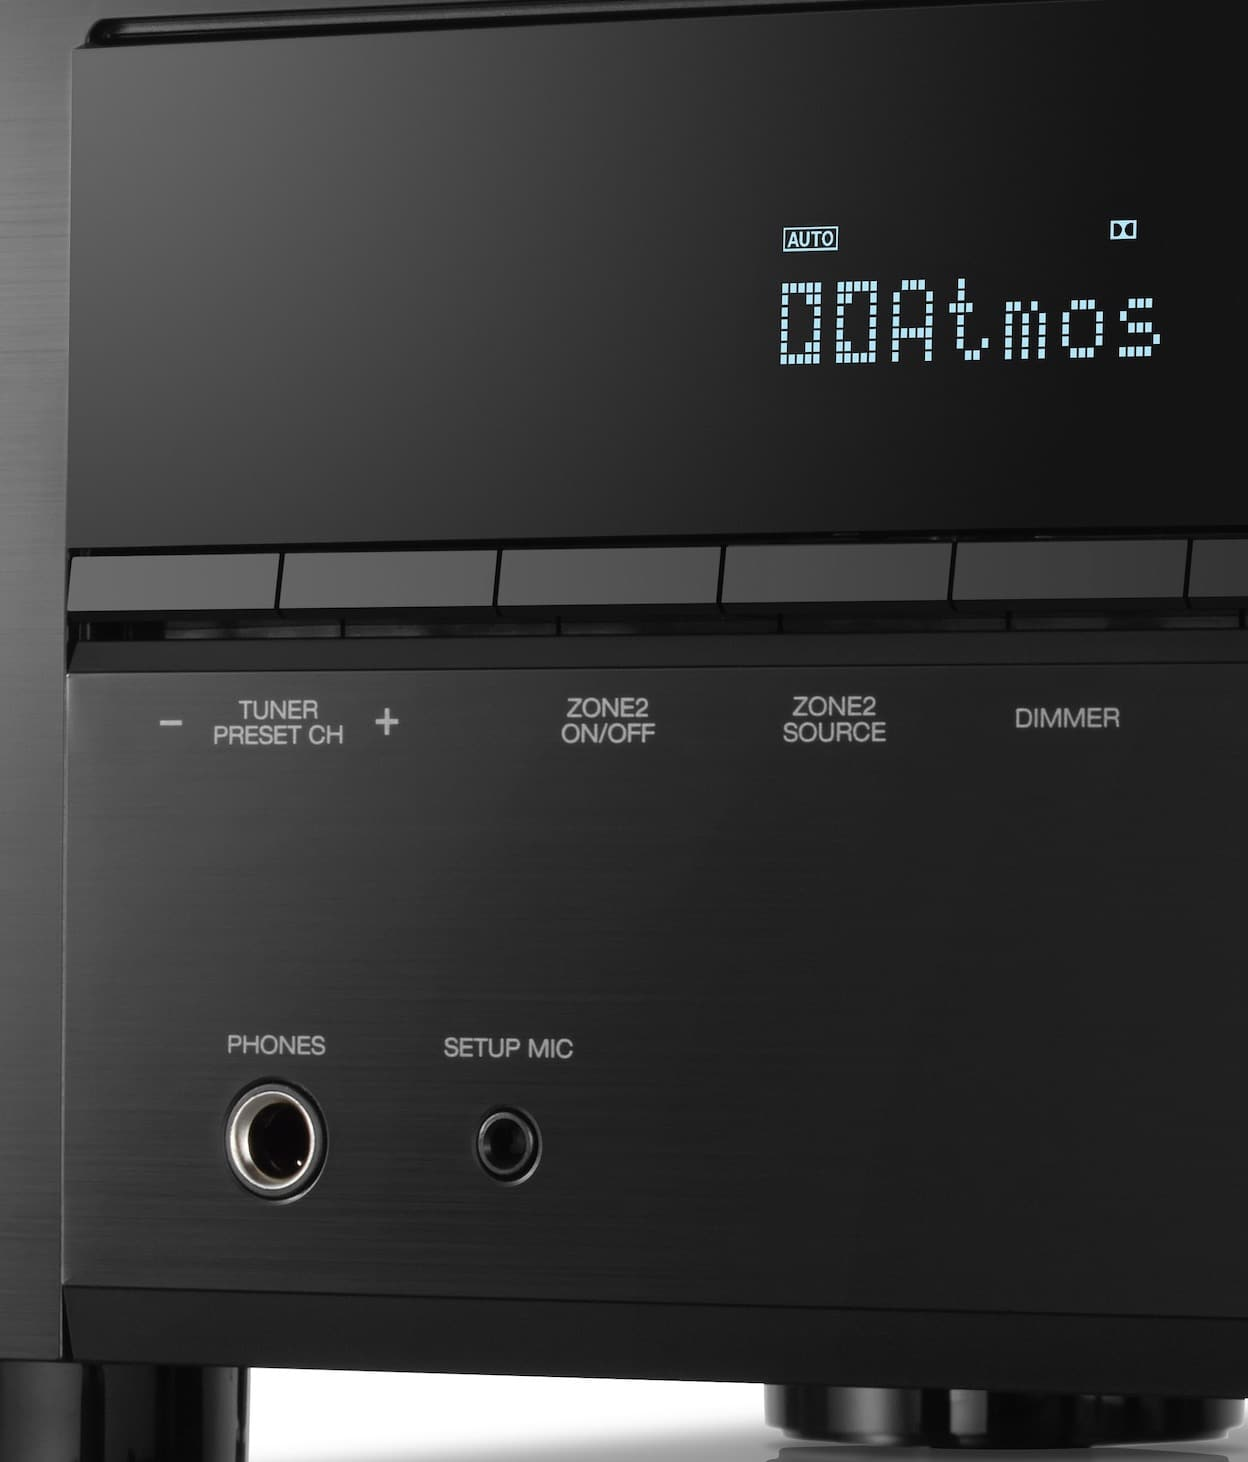 AVR-X3600H From Denon: IMAX powered - The Audiophile Man